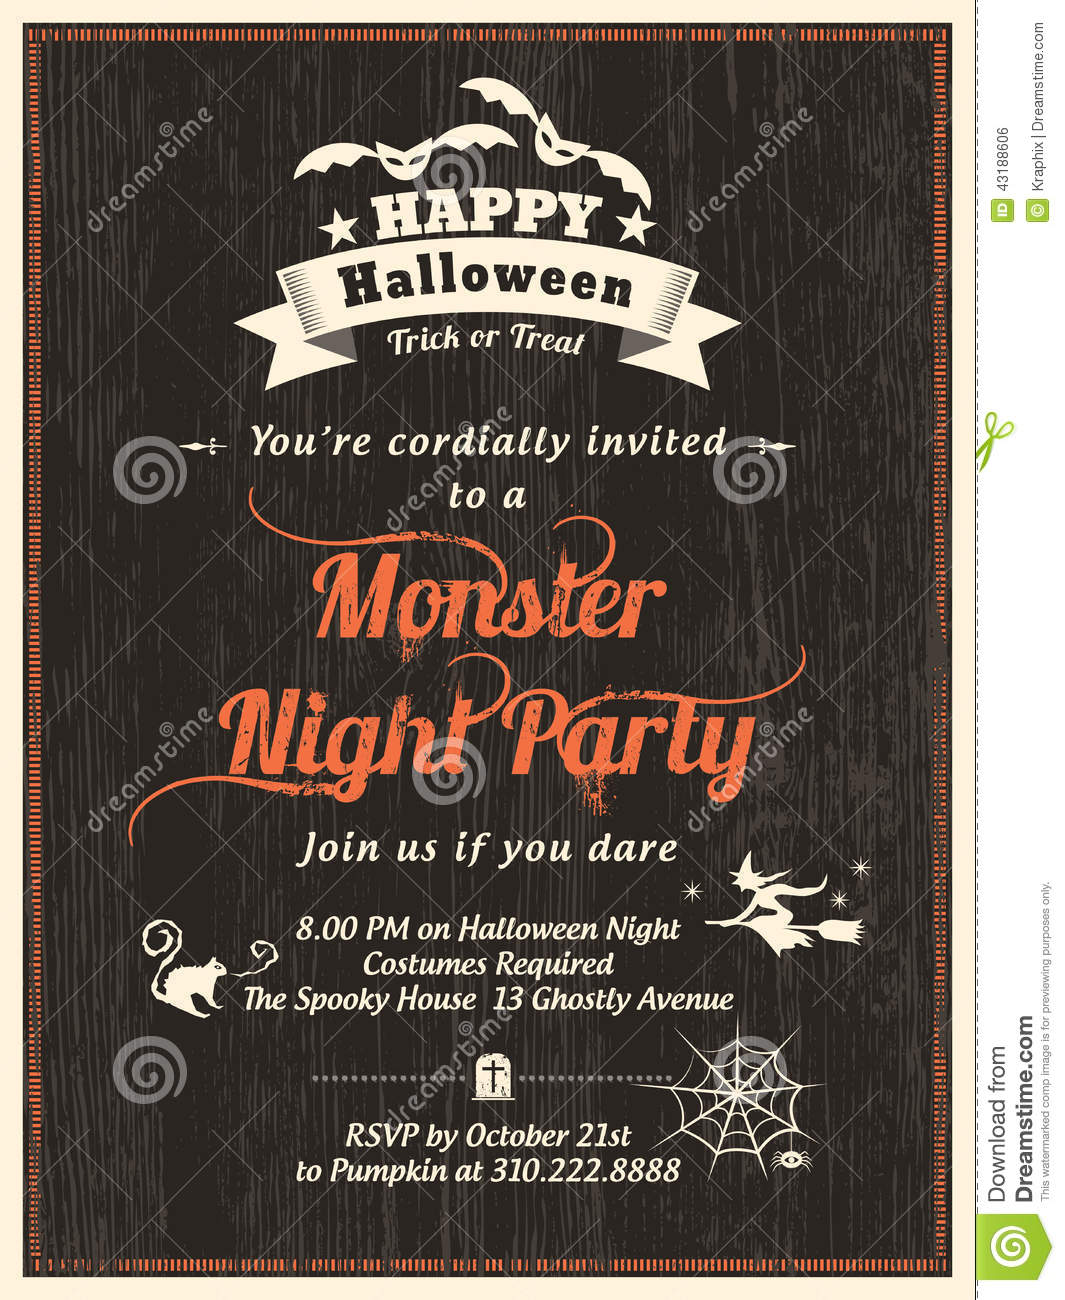 Halloween Party Flyer Invitation Template Stock Vector - Image ...